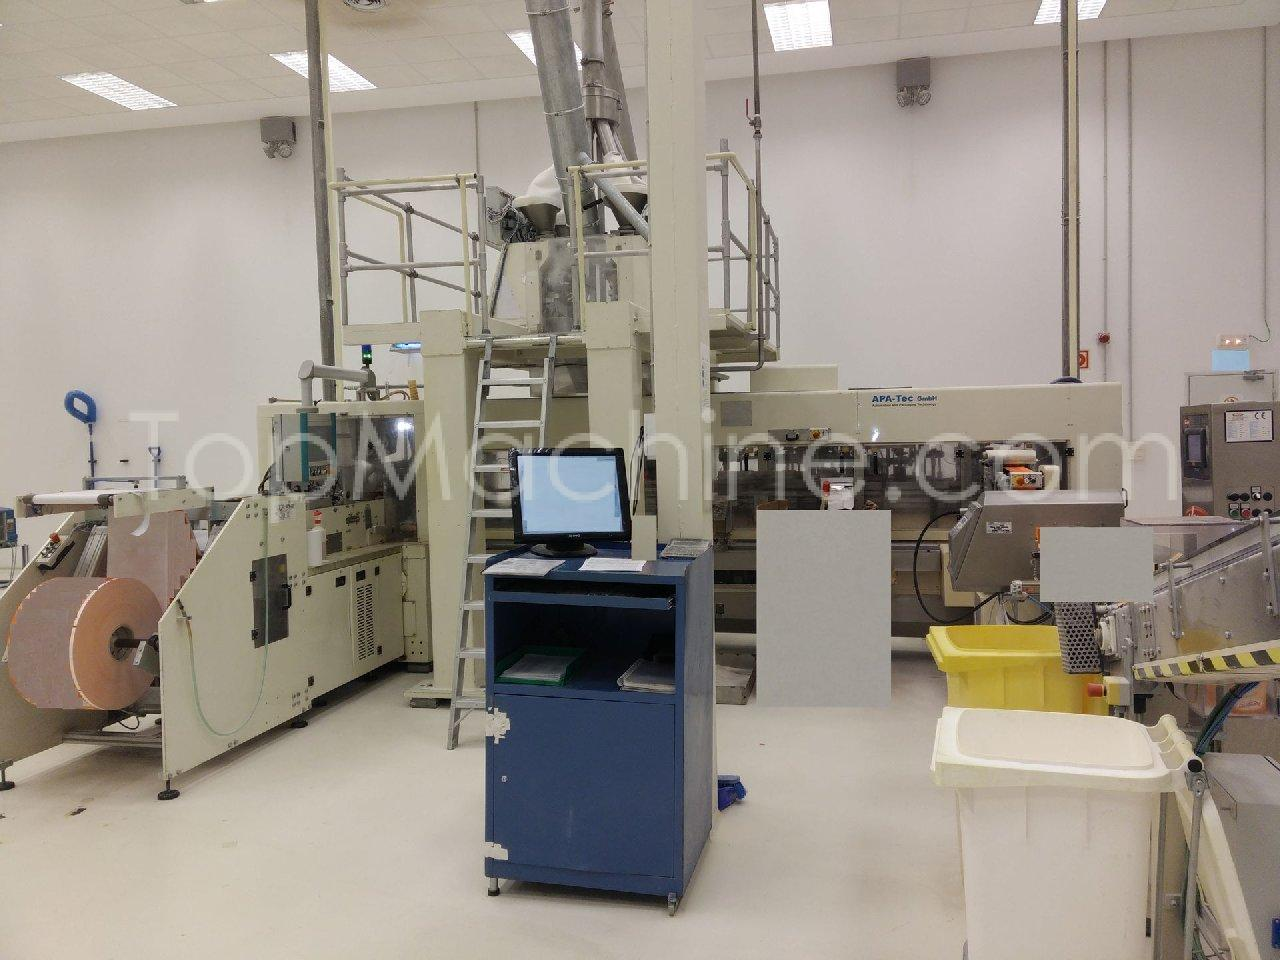 Used Bosch-Hesser H-PLBRD3 Food Packing, Filling in Bags